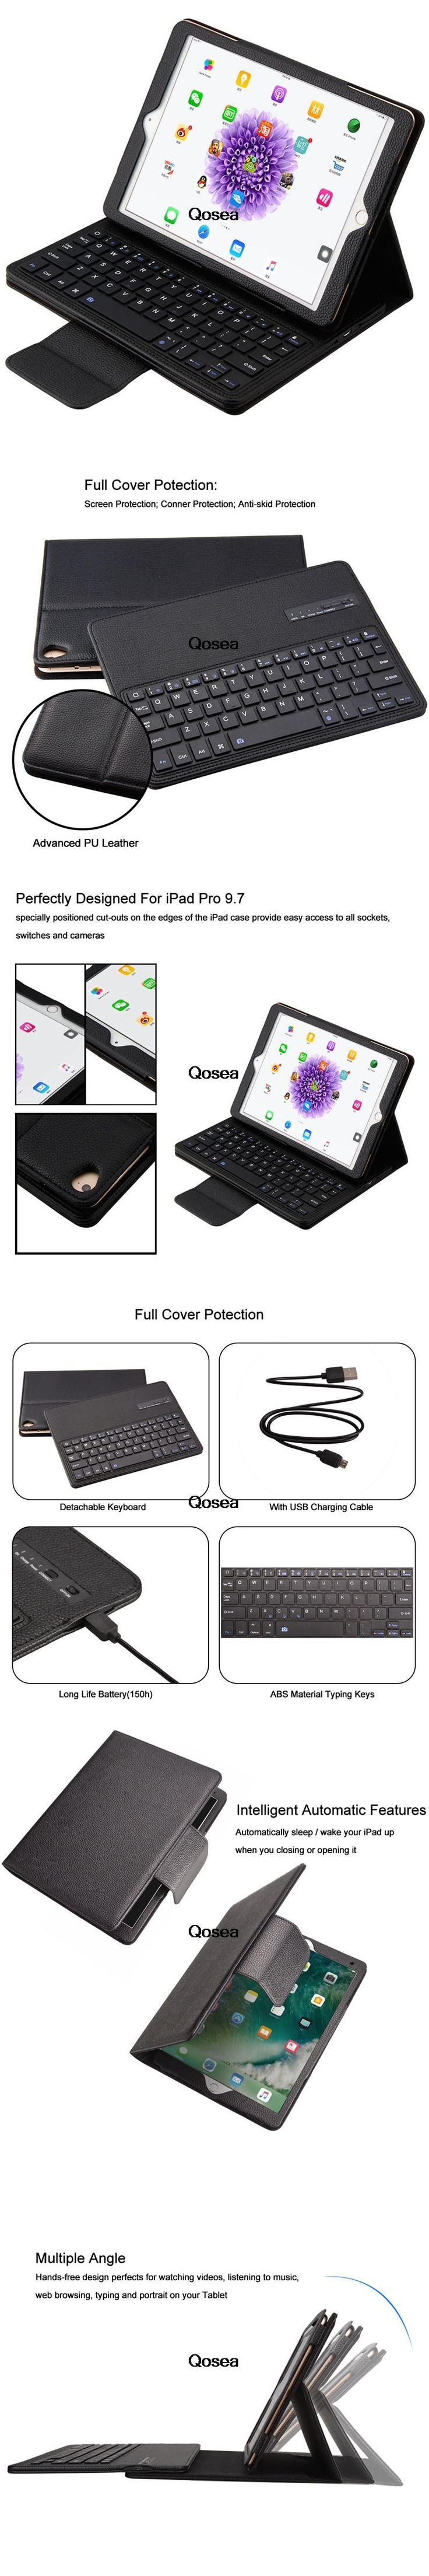 Qosea 2 in 1 Detachable Wireless Bluetooth Keyboard Case Genuine Leather Case For Apple i Pad Pro 9.7 Bluetooth keyboard Cover